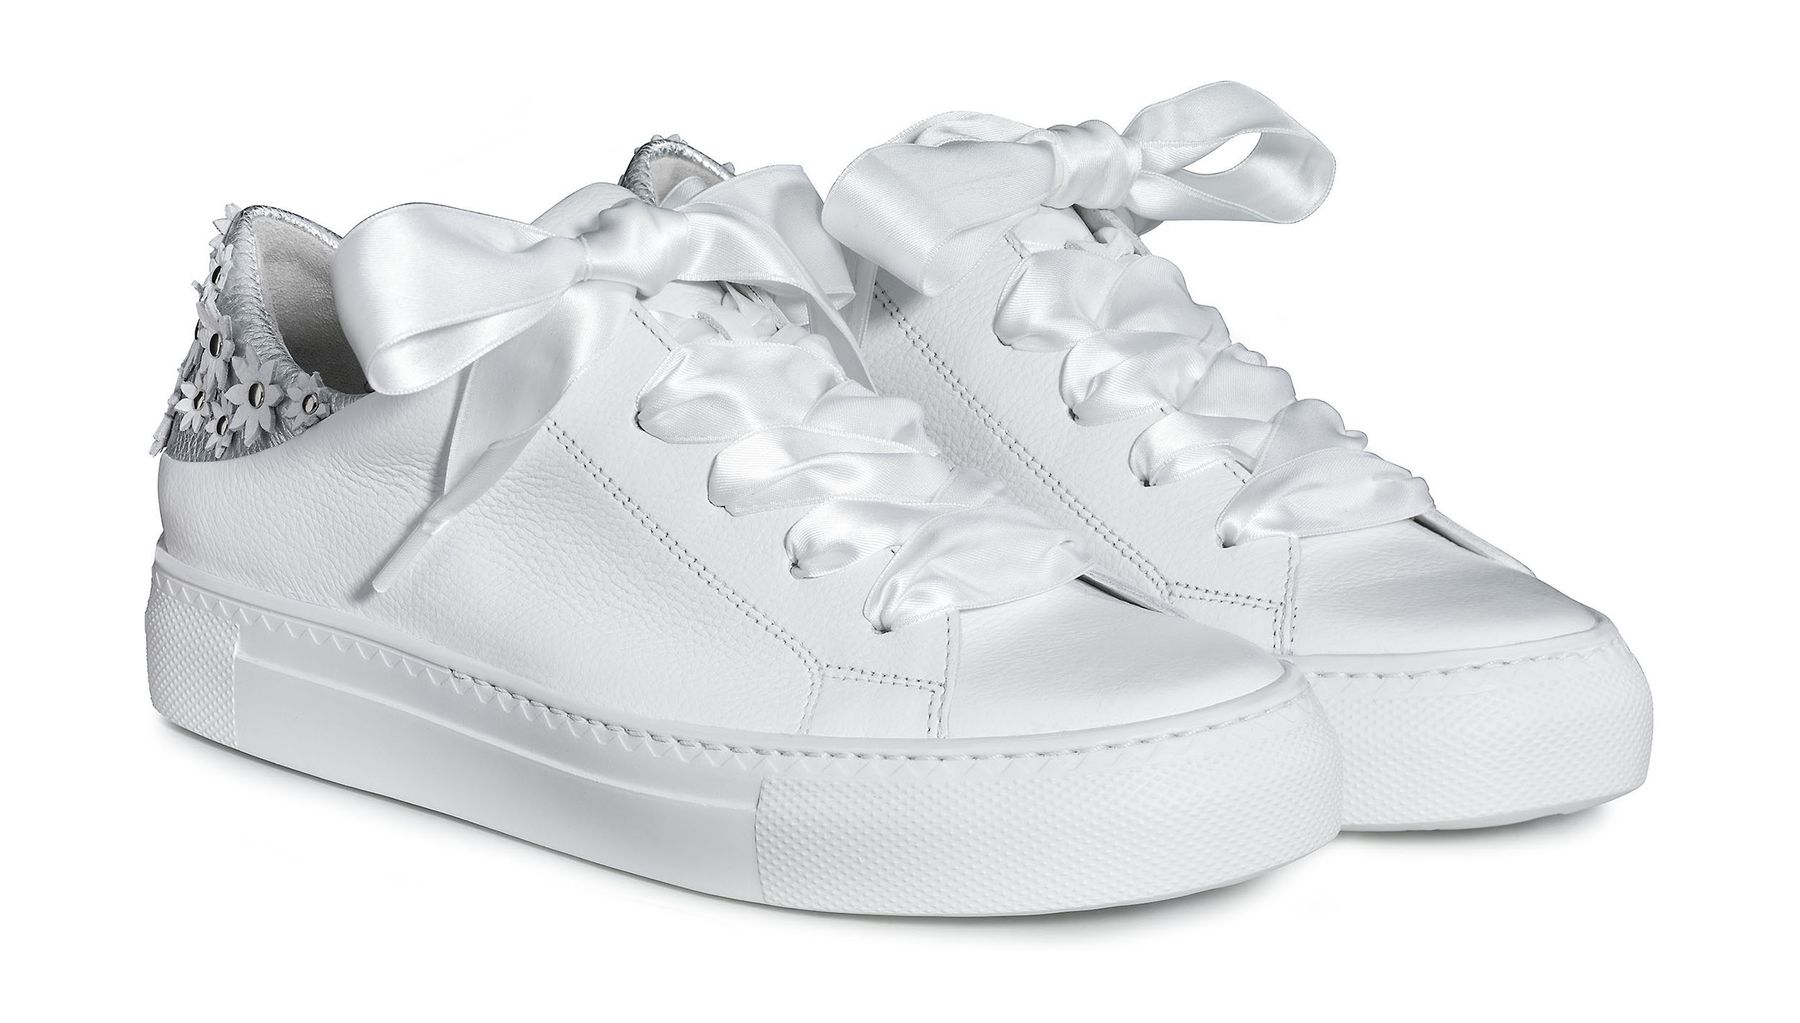 sports shoes 7d9c2 b0373 Pretty pauls with intricate flowers in White - Paul Green